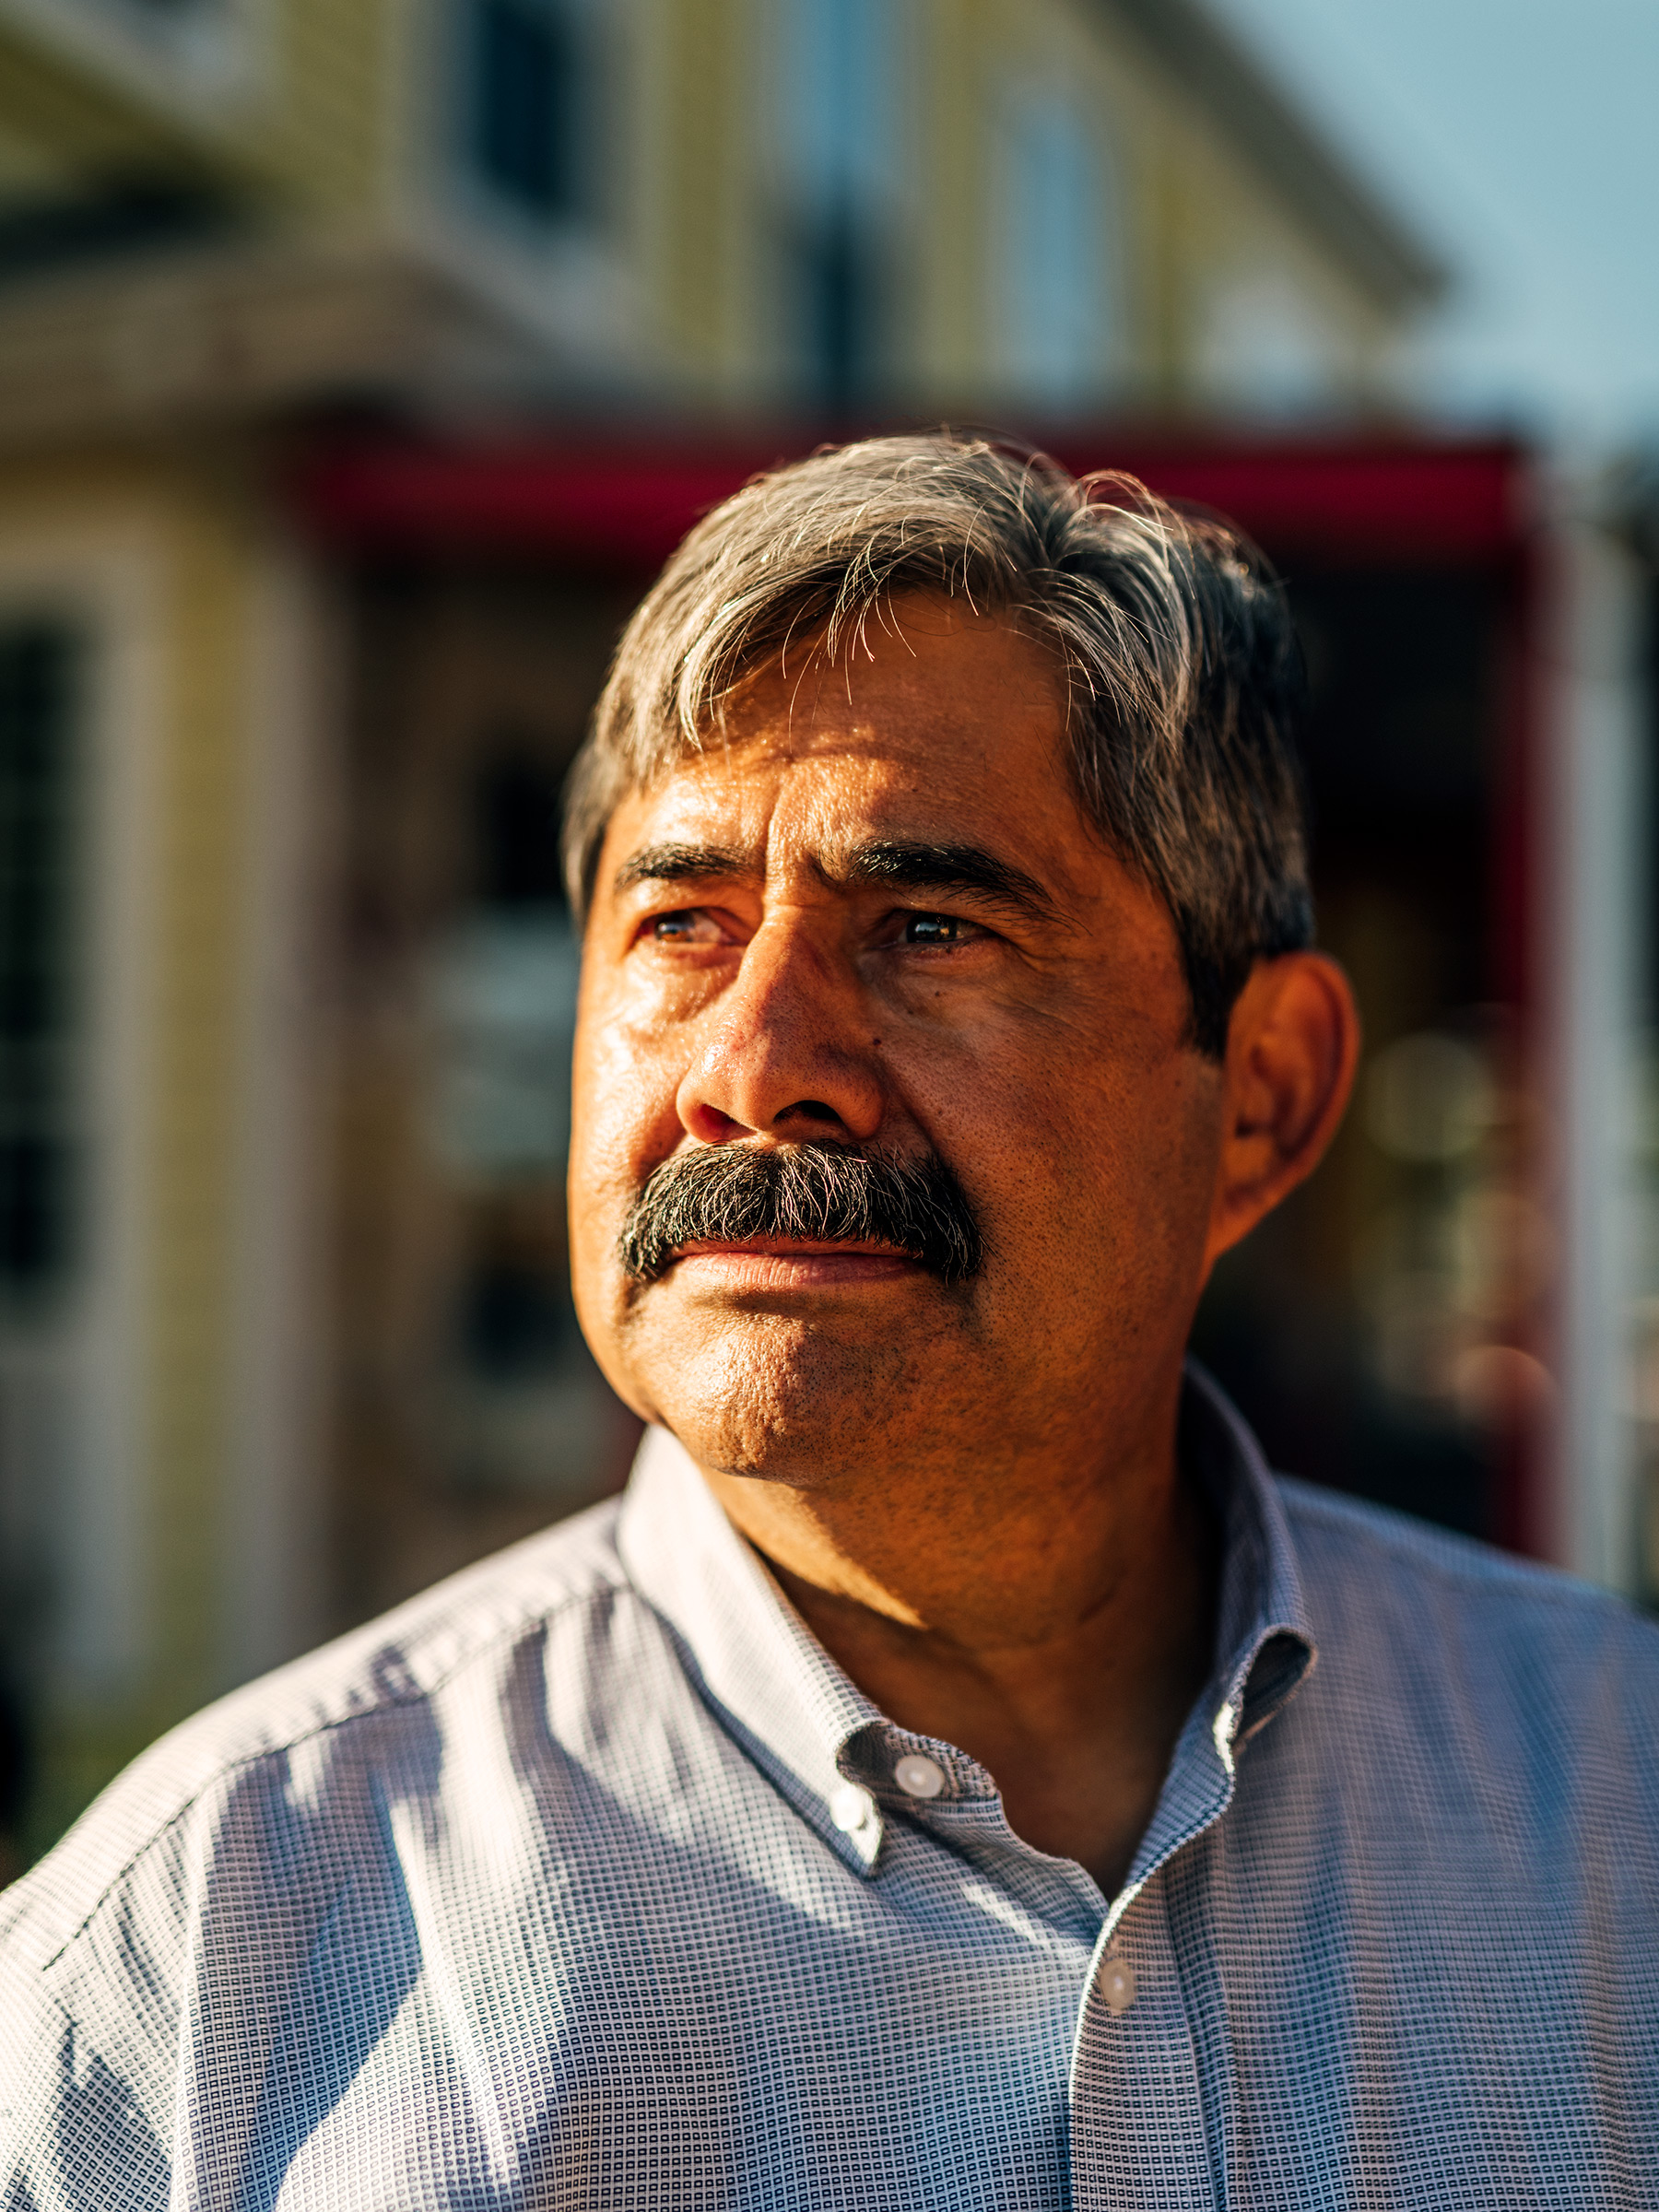 Macias, 56, opened his local bar, Jaime's Place, in October 2020, during the pandemic